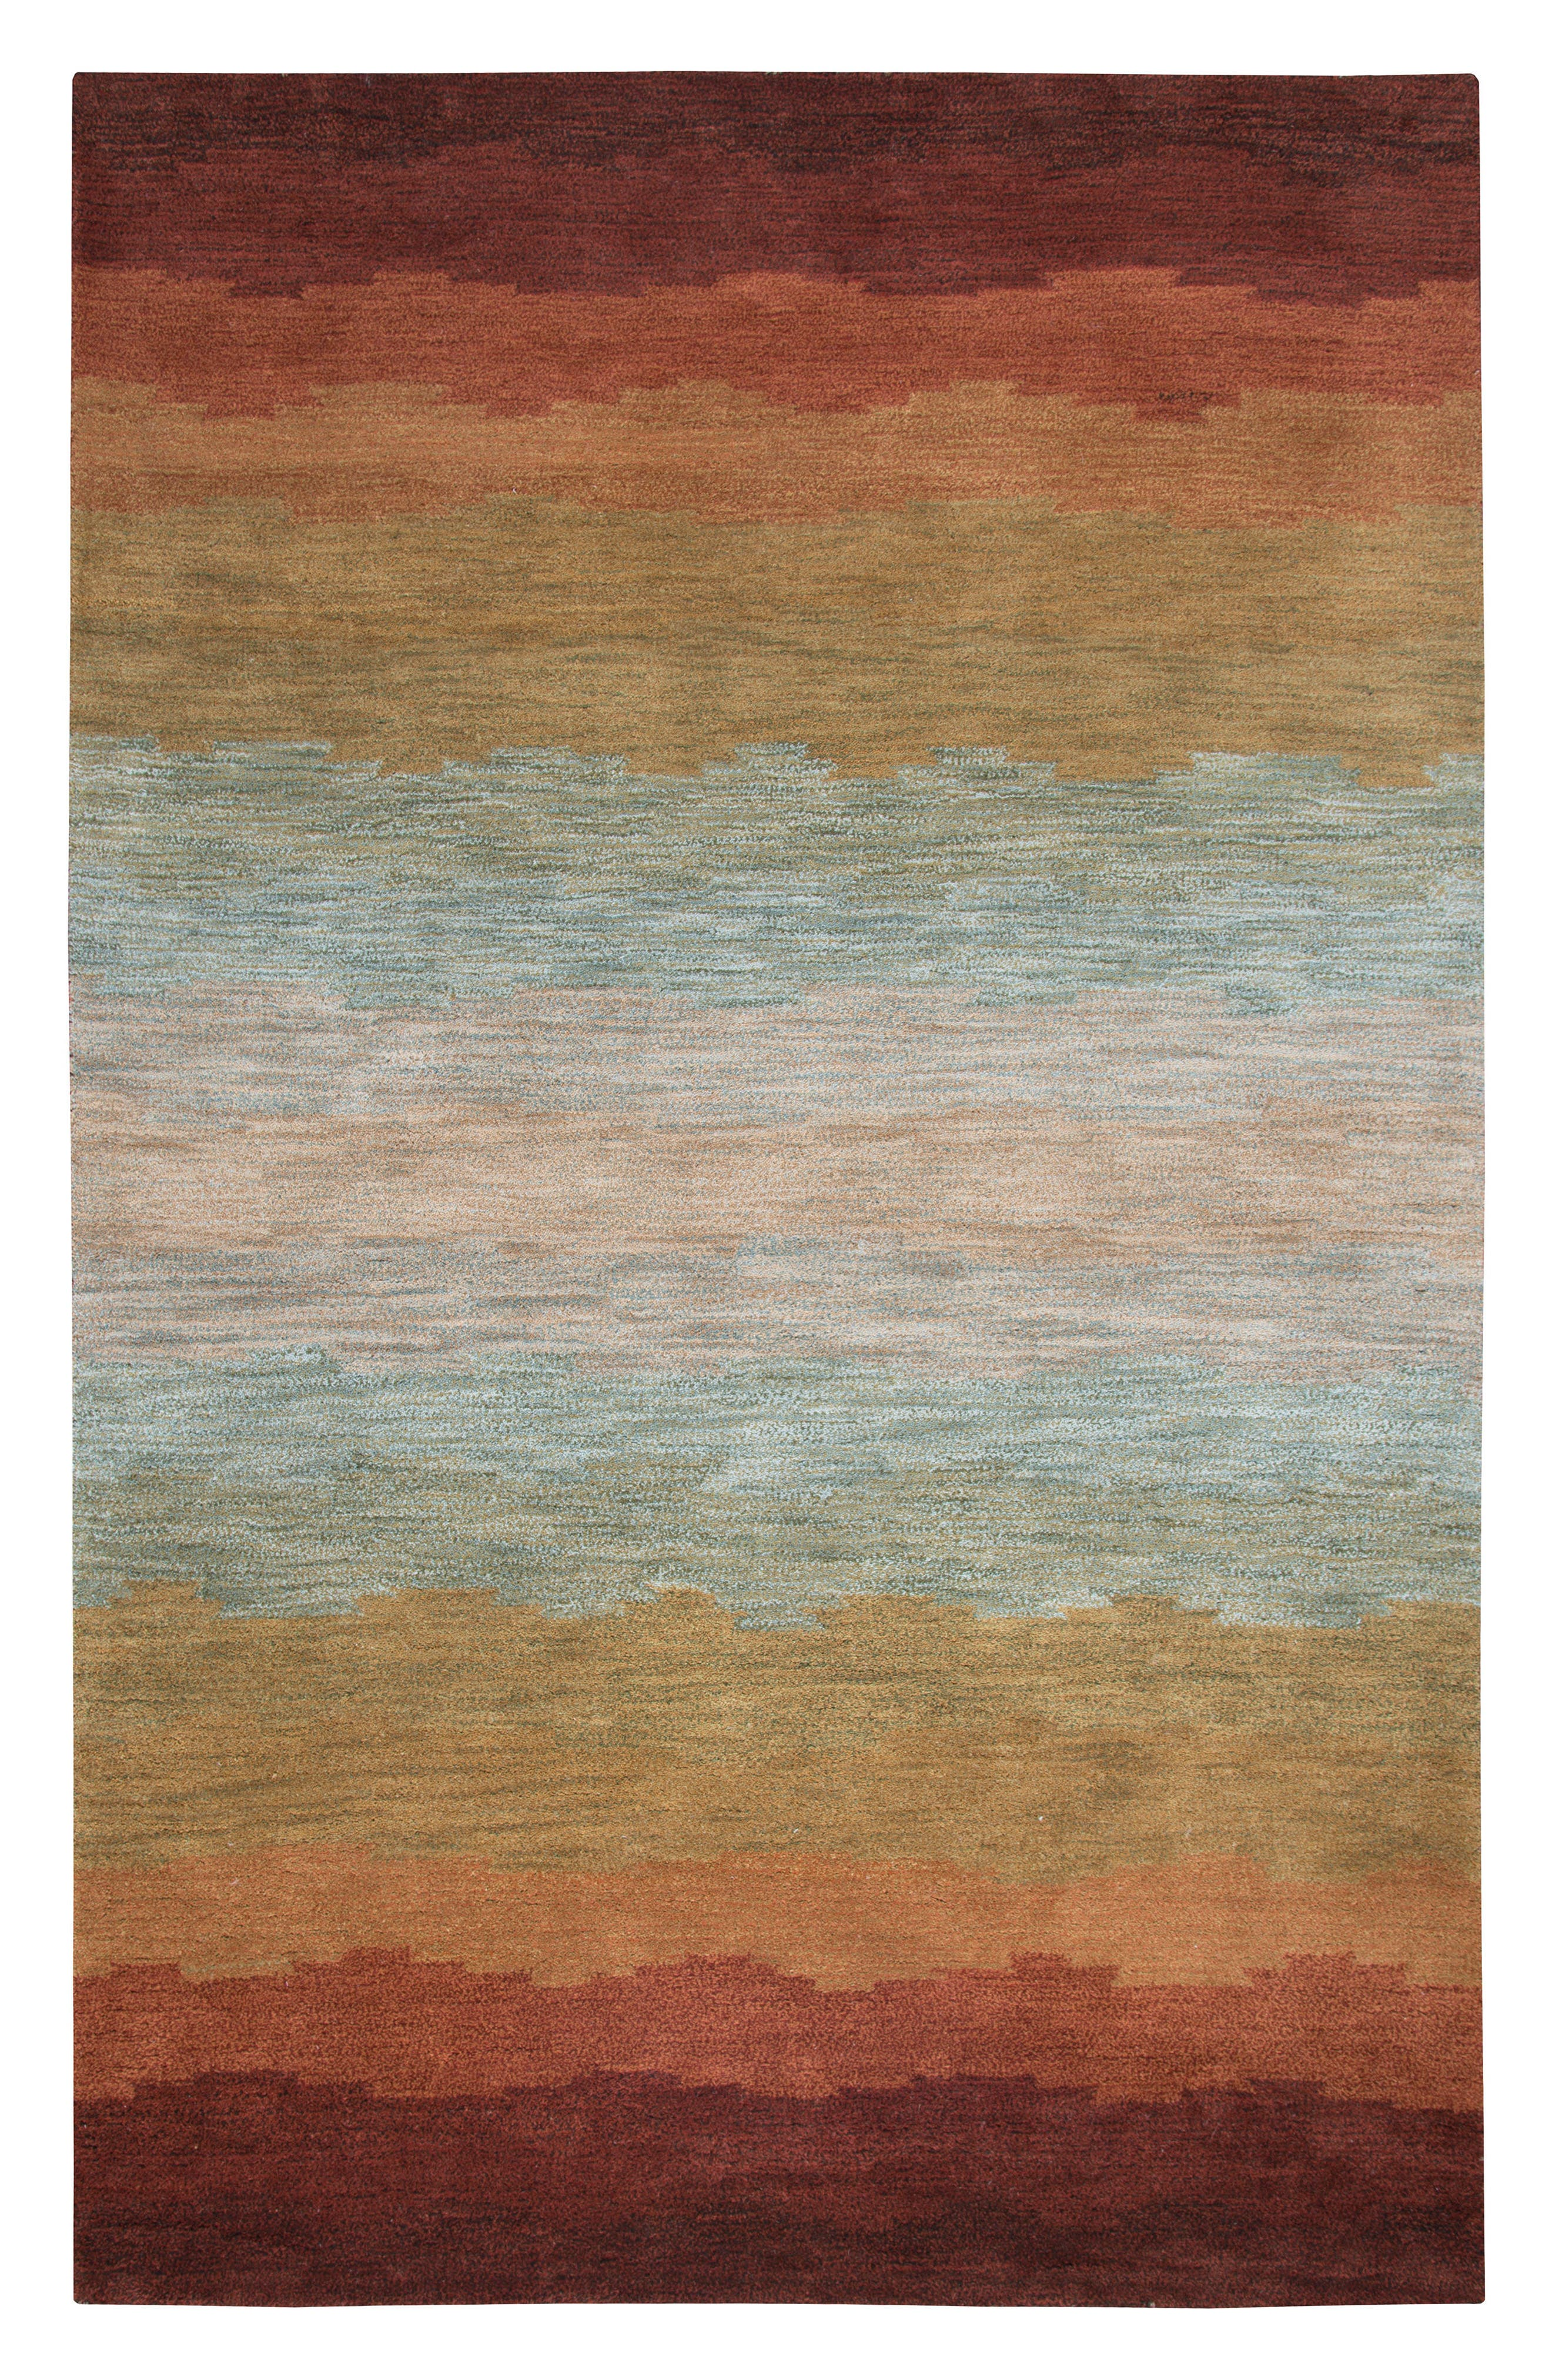 Desert Oasis Hand Tufted Wool Area Rug,                             Main thumbnail 1, color,                             220